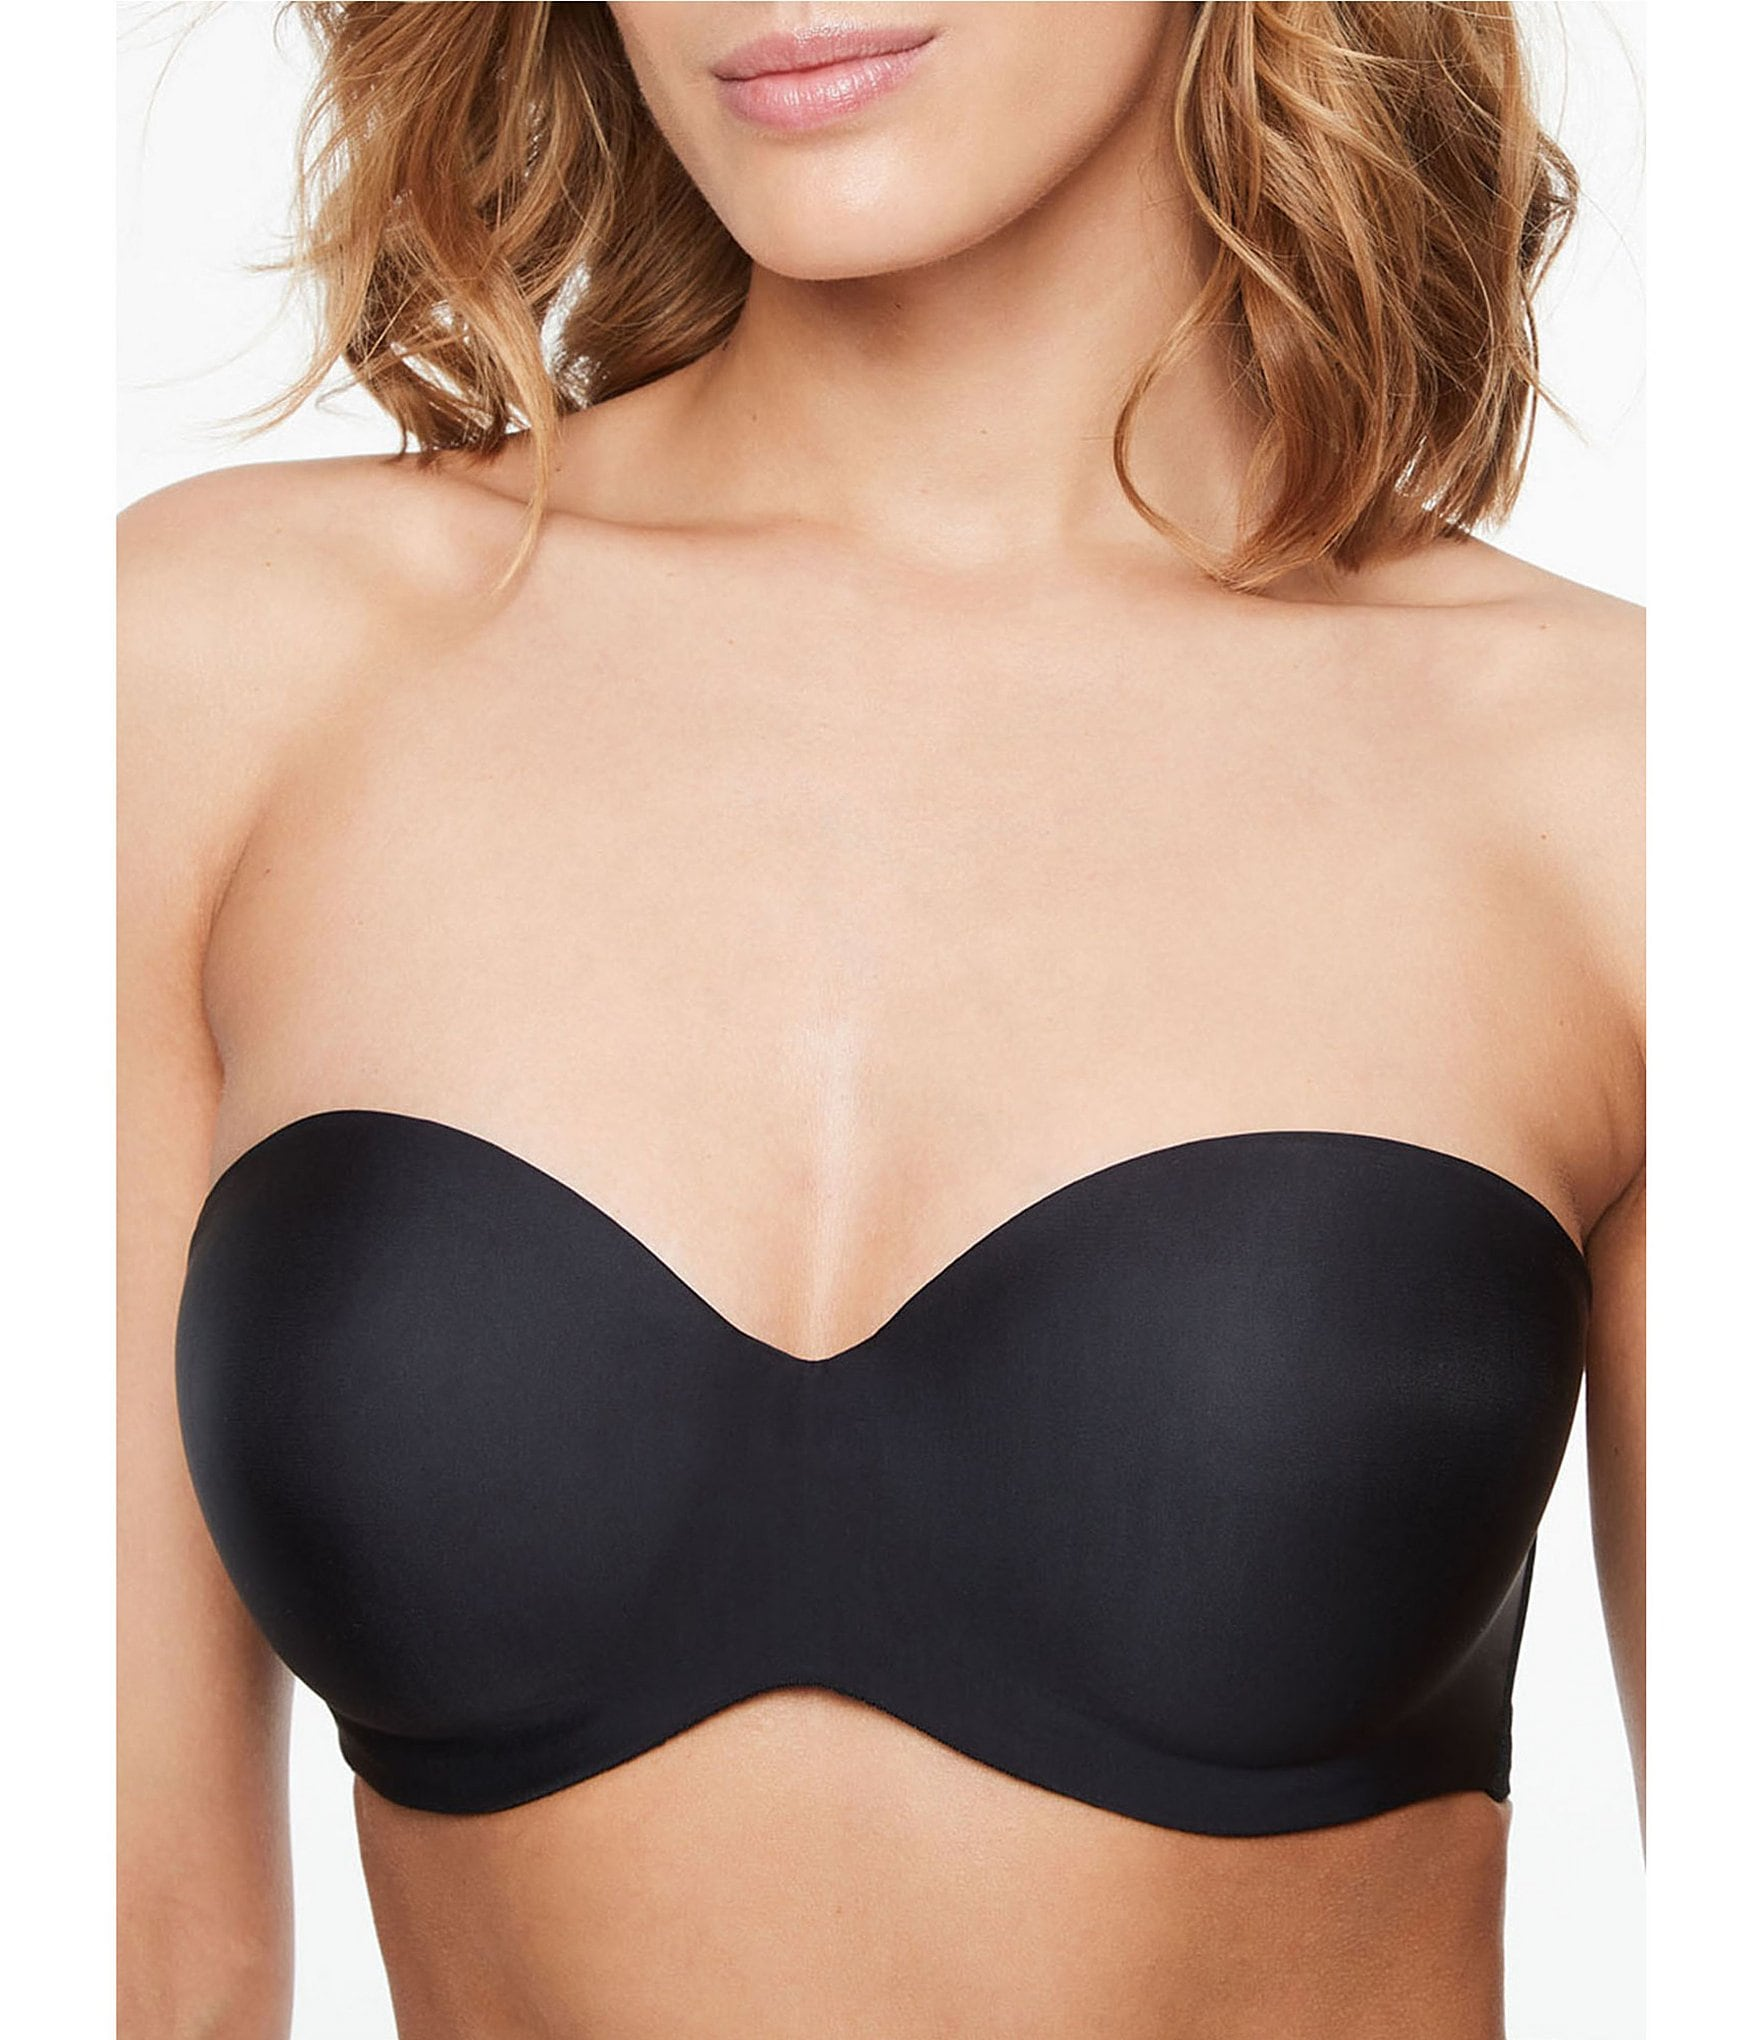 0cad5f1b4e Chantelle Absolute Invisible Smooth Strapless Bra